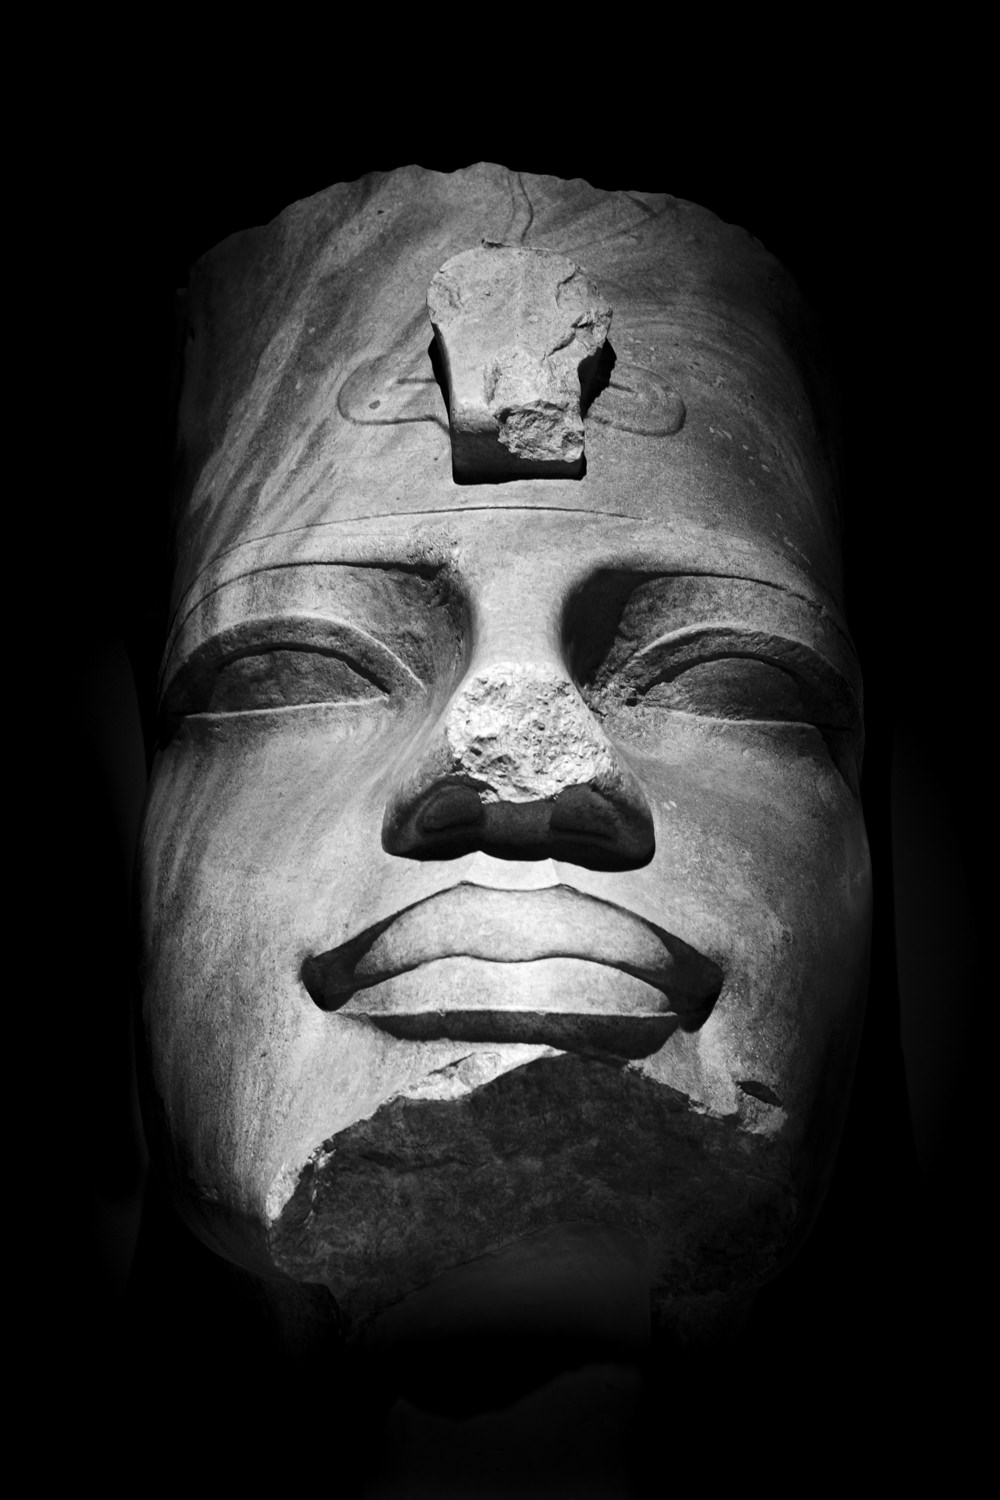 an ancient egyptian sculpture of a pharaoh's head